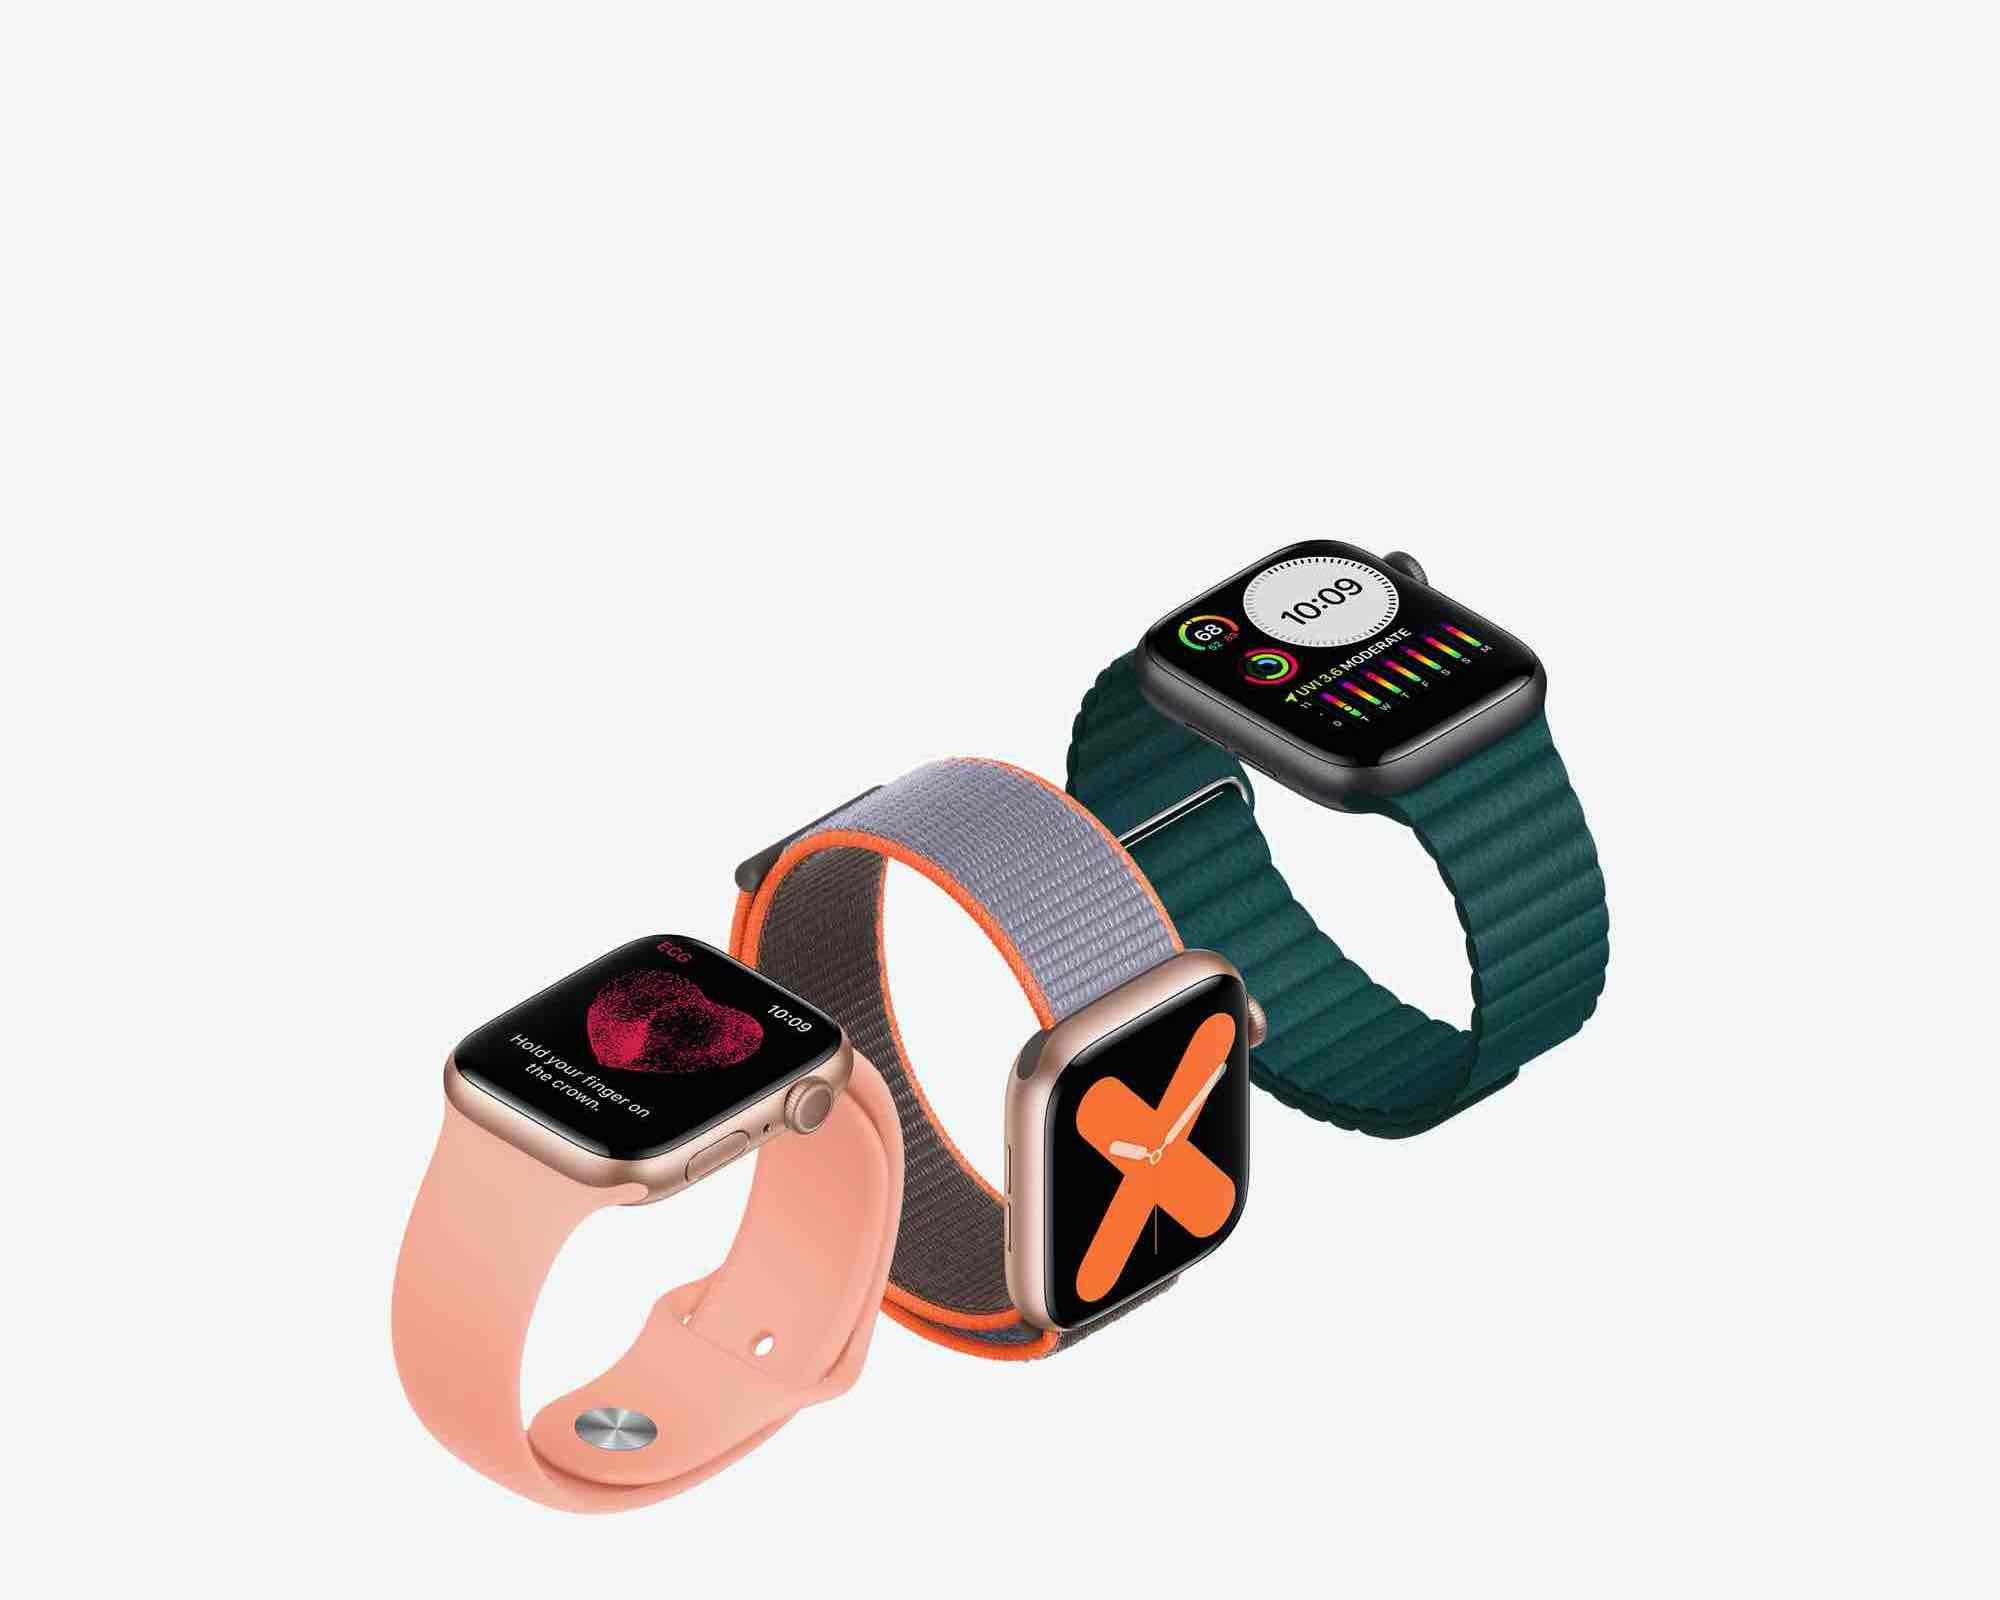 Apple Watch Store Ninove